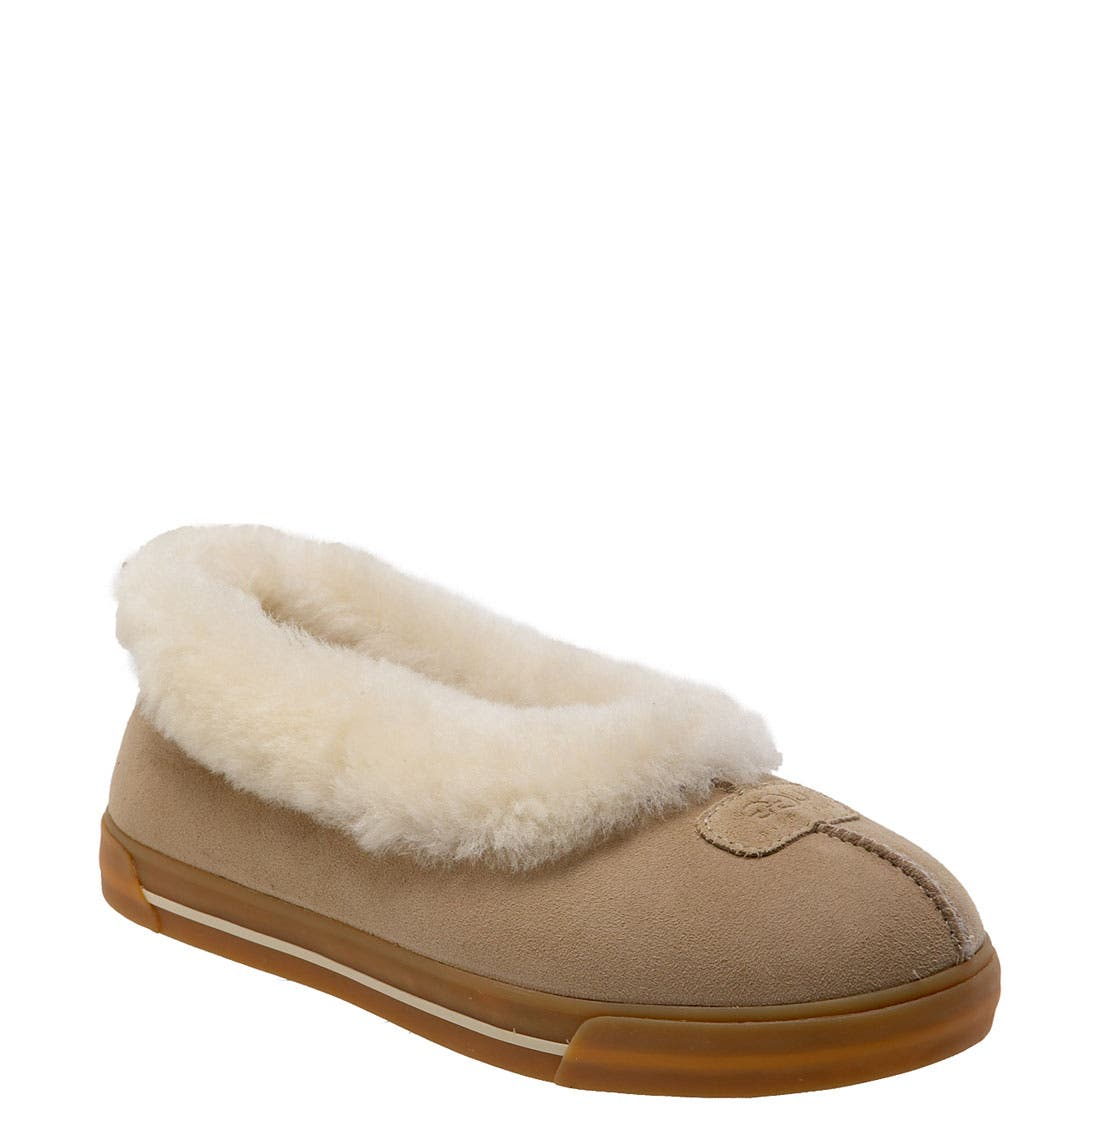 Alternate Image 1 Selected - UGG® Australia 'Rylan' Slipper (Women)